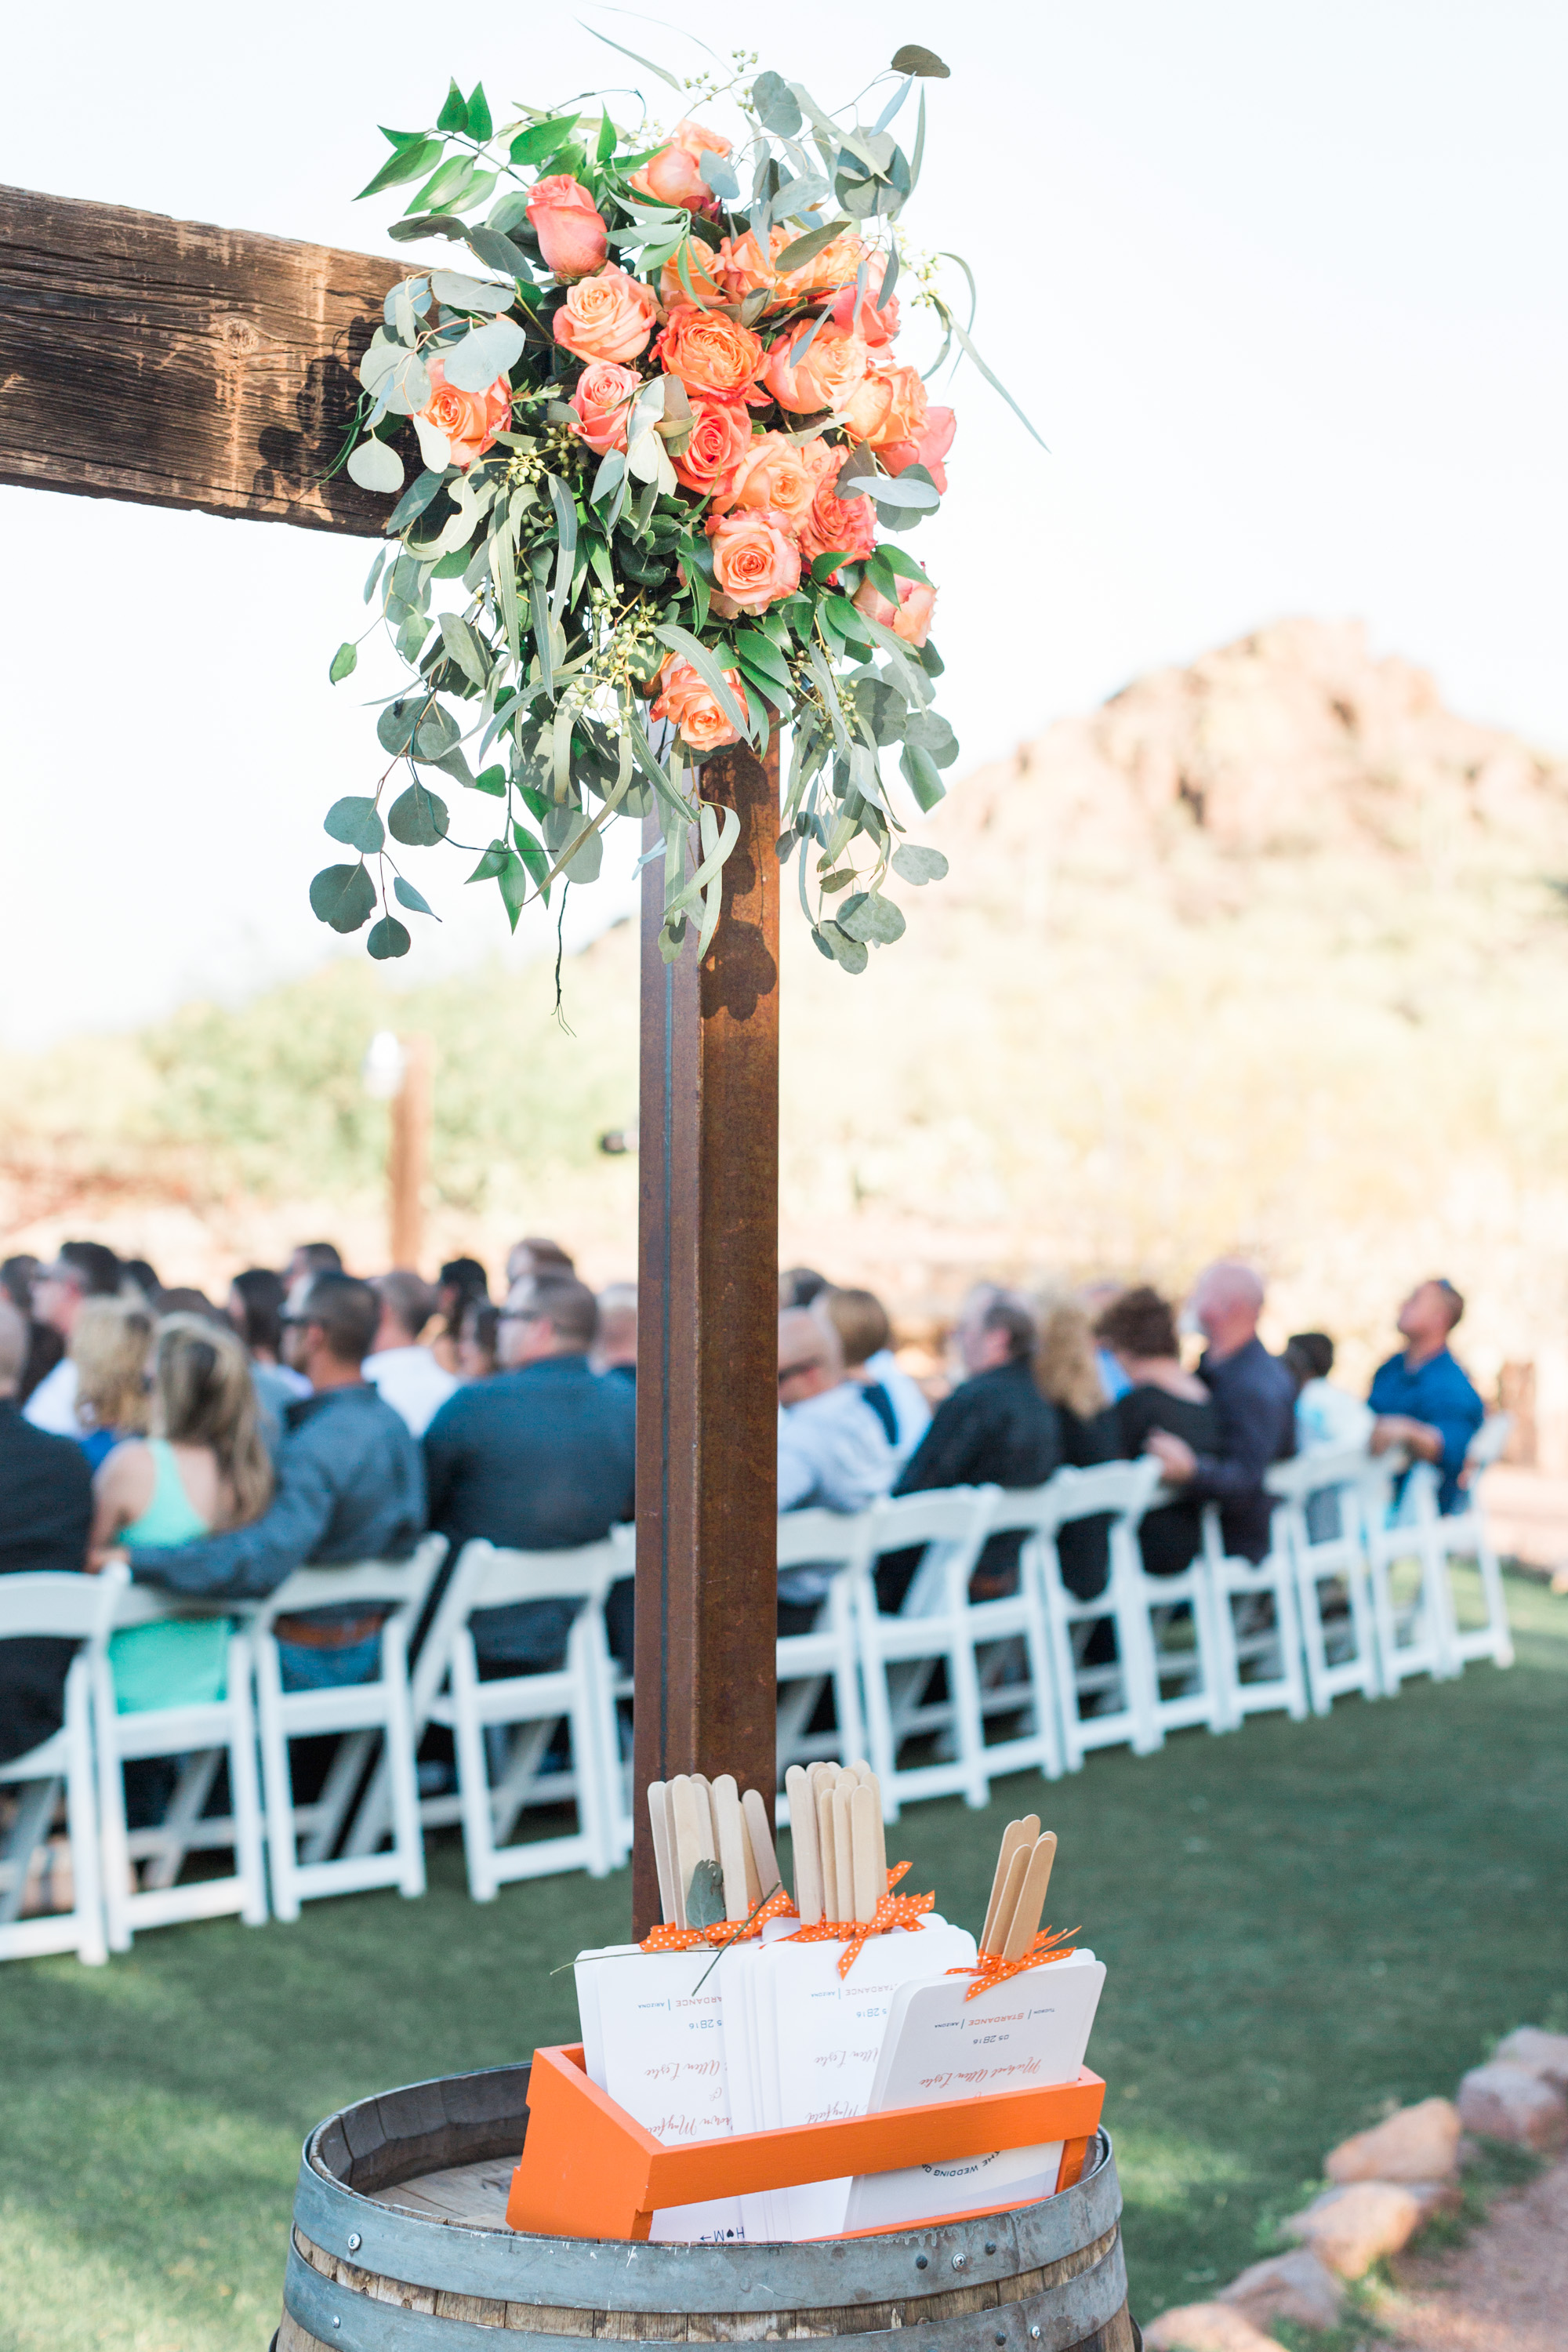 Beautiful arbor at ceremony site with guests in the background.